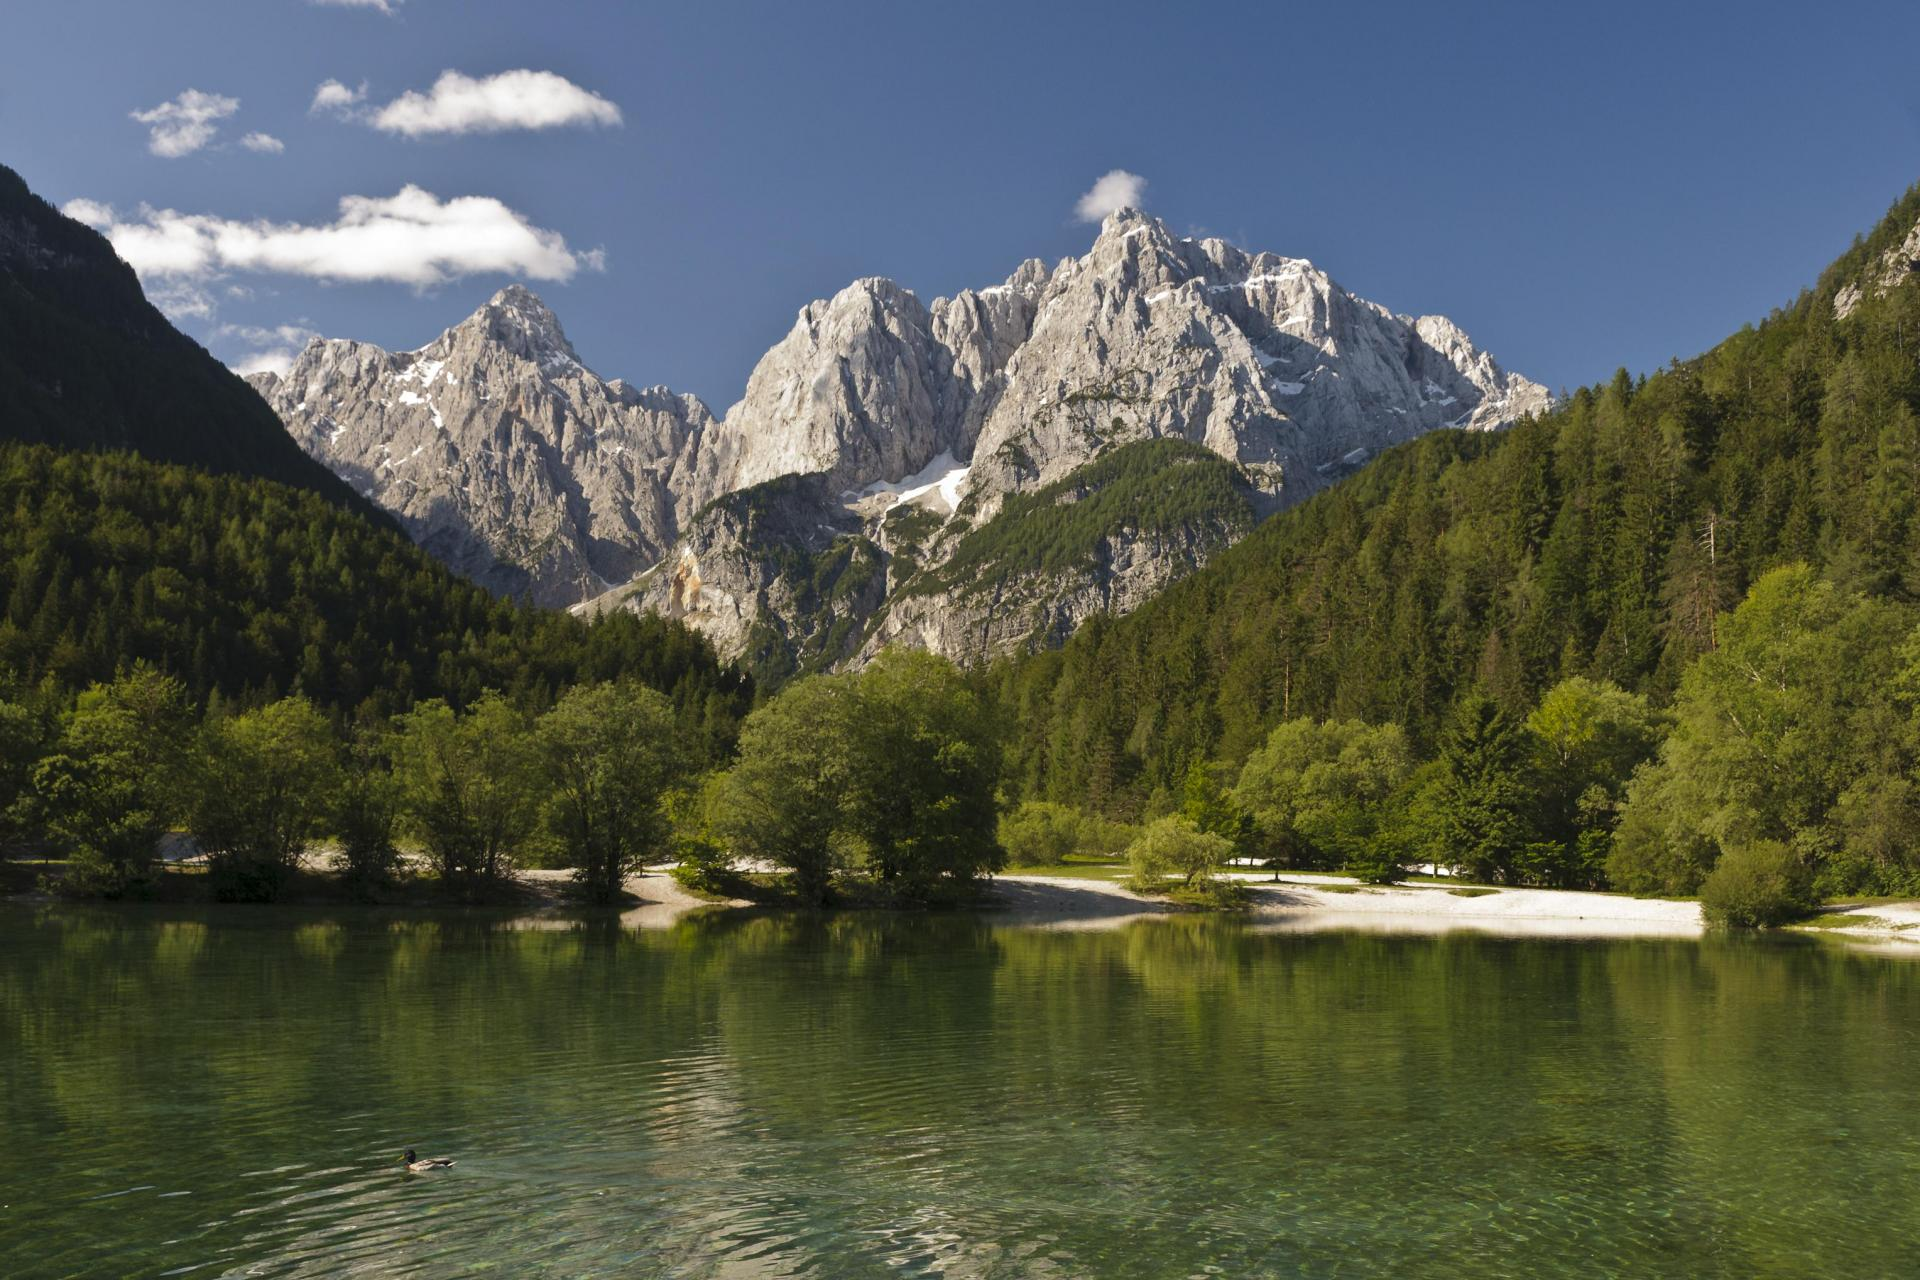 Slovenia bicycle tour to discover Pure Slovenia best cycling!